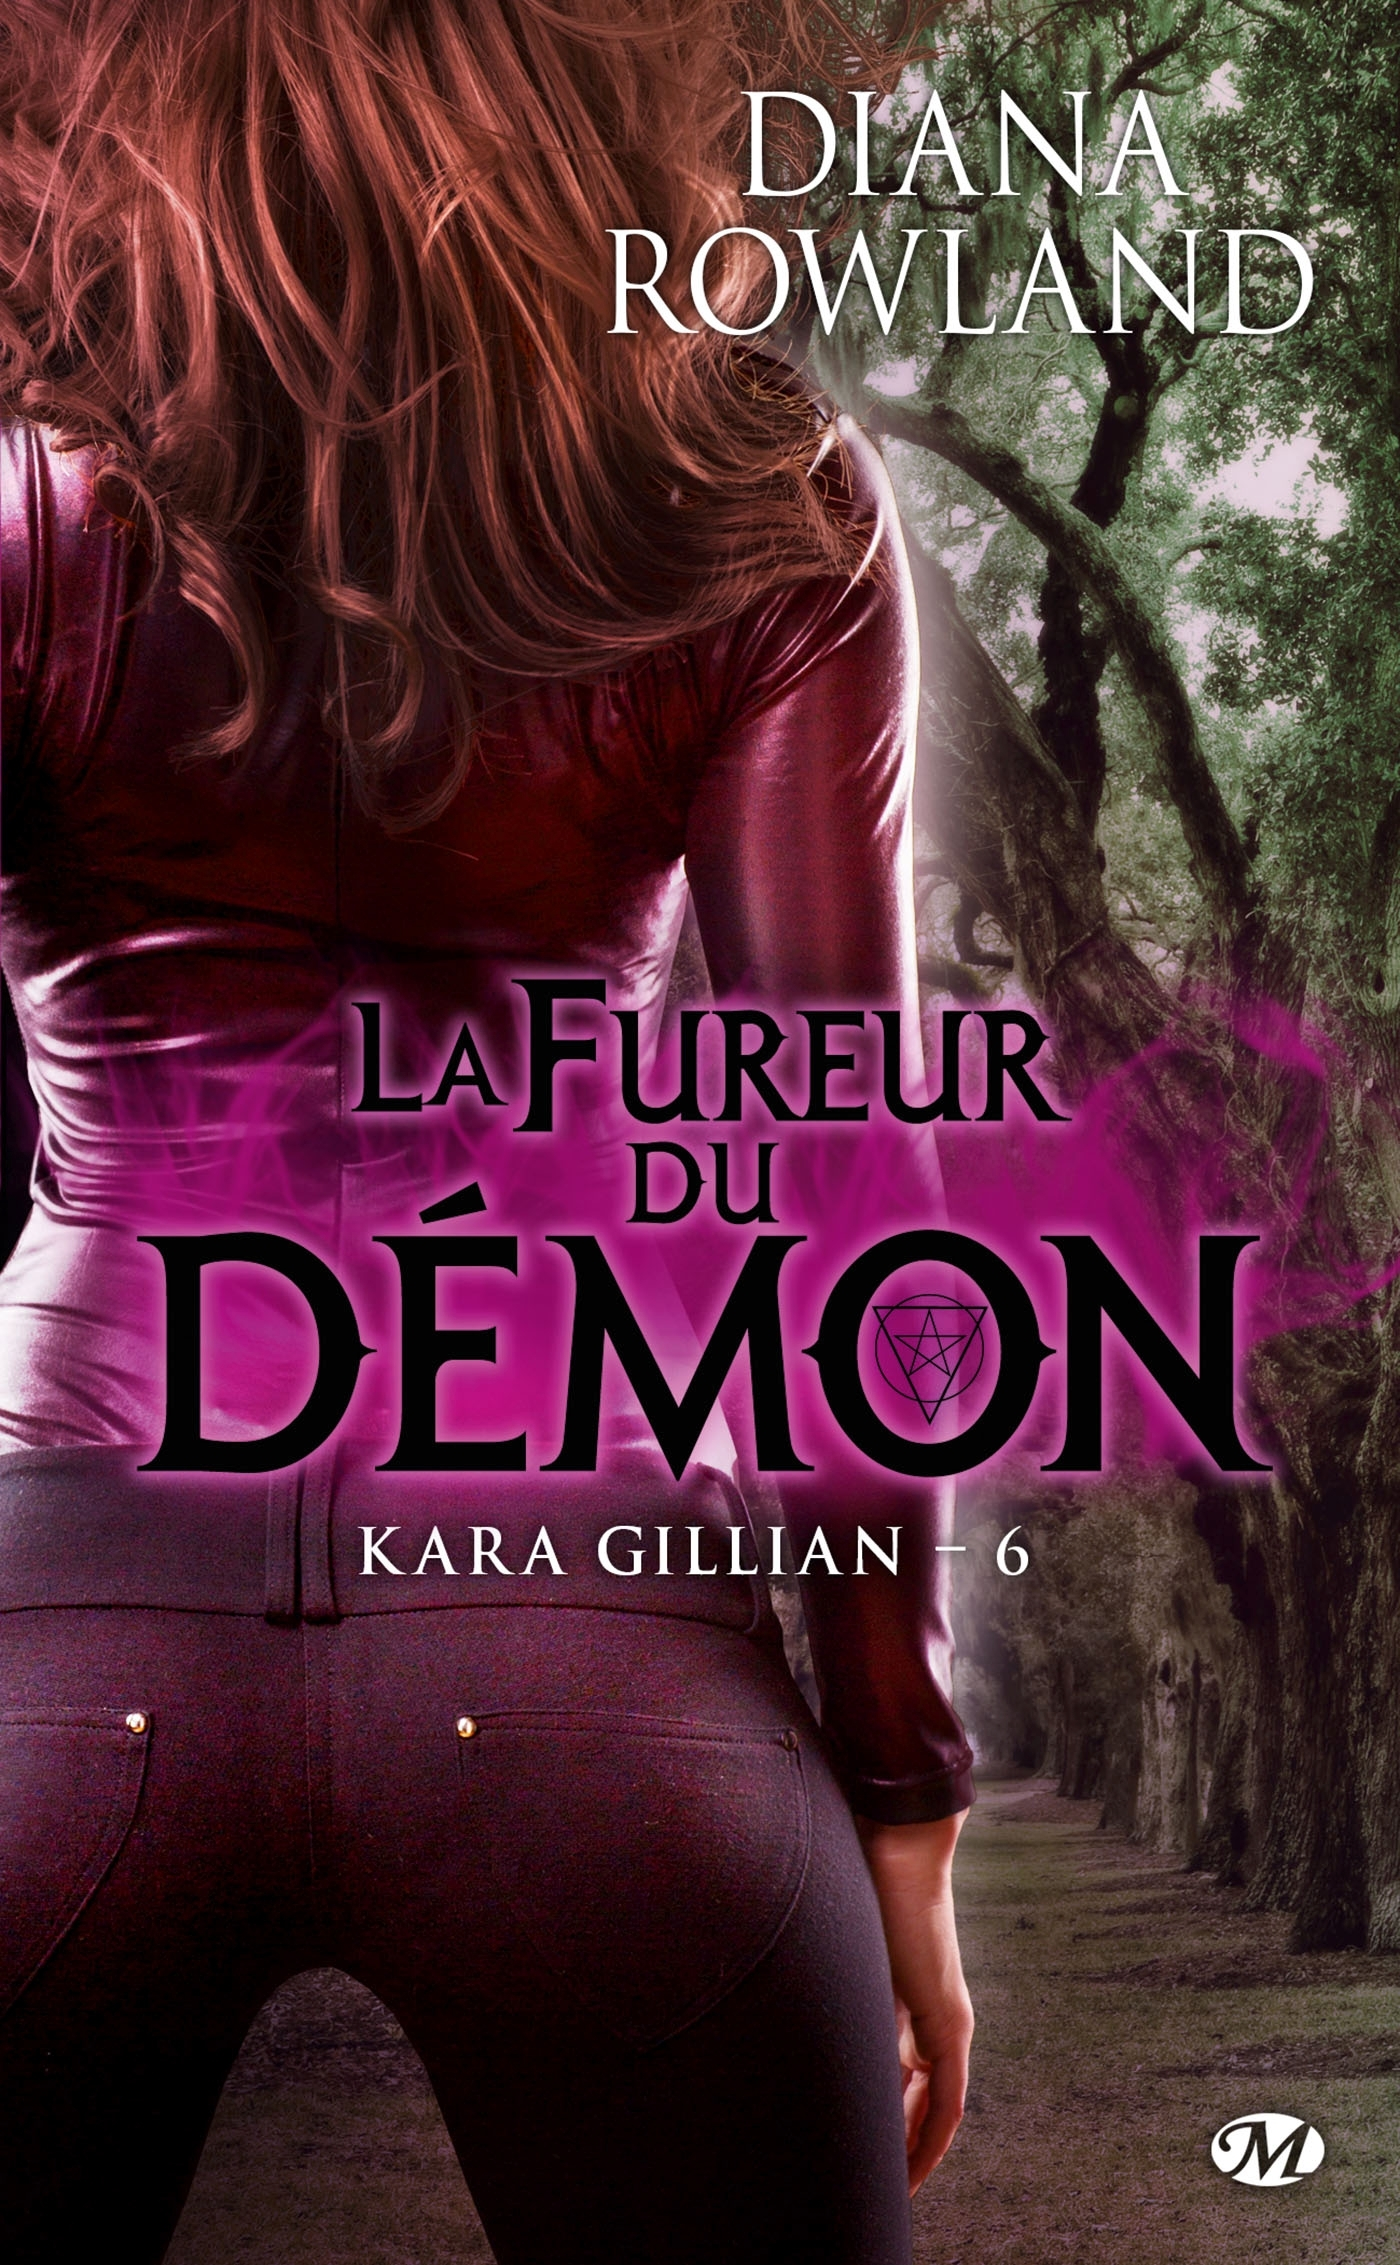 KARA GILLIAN, T6 : LA FUREUR DU DEMON